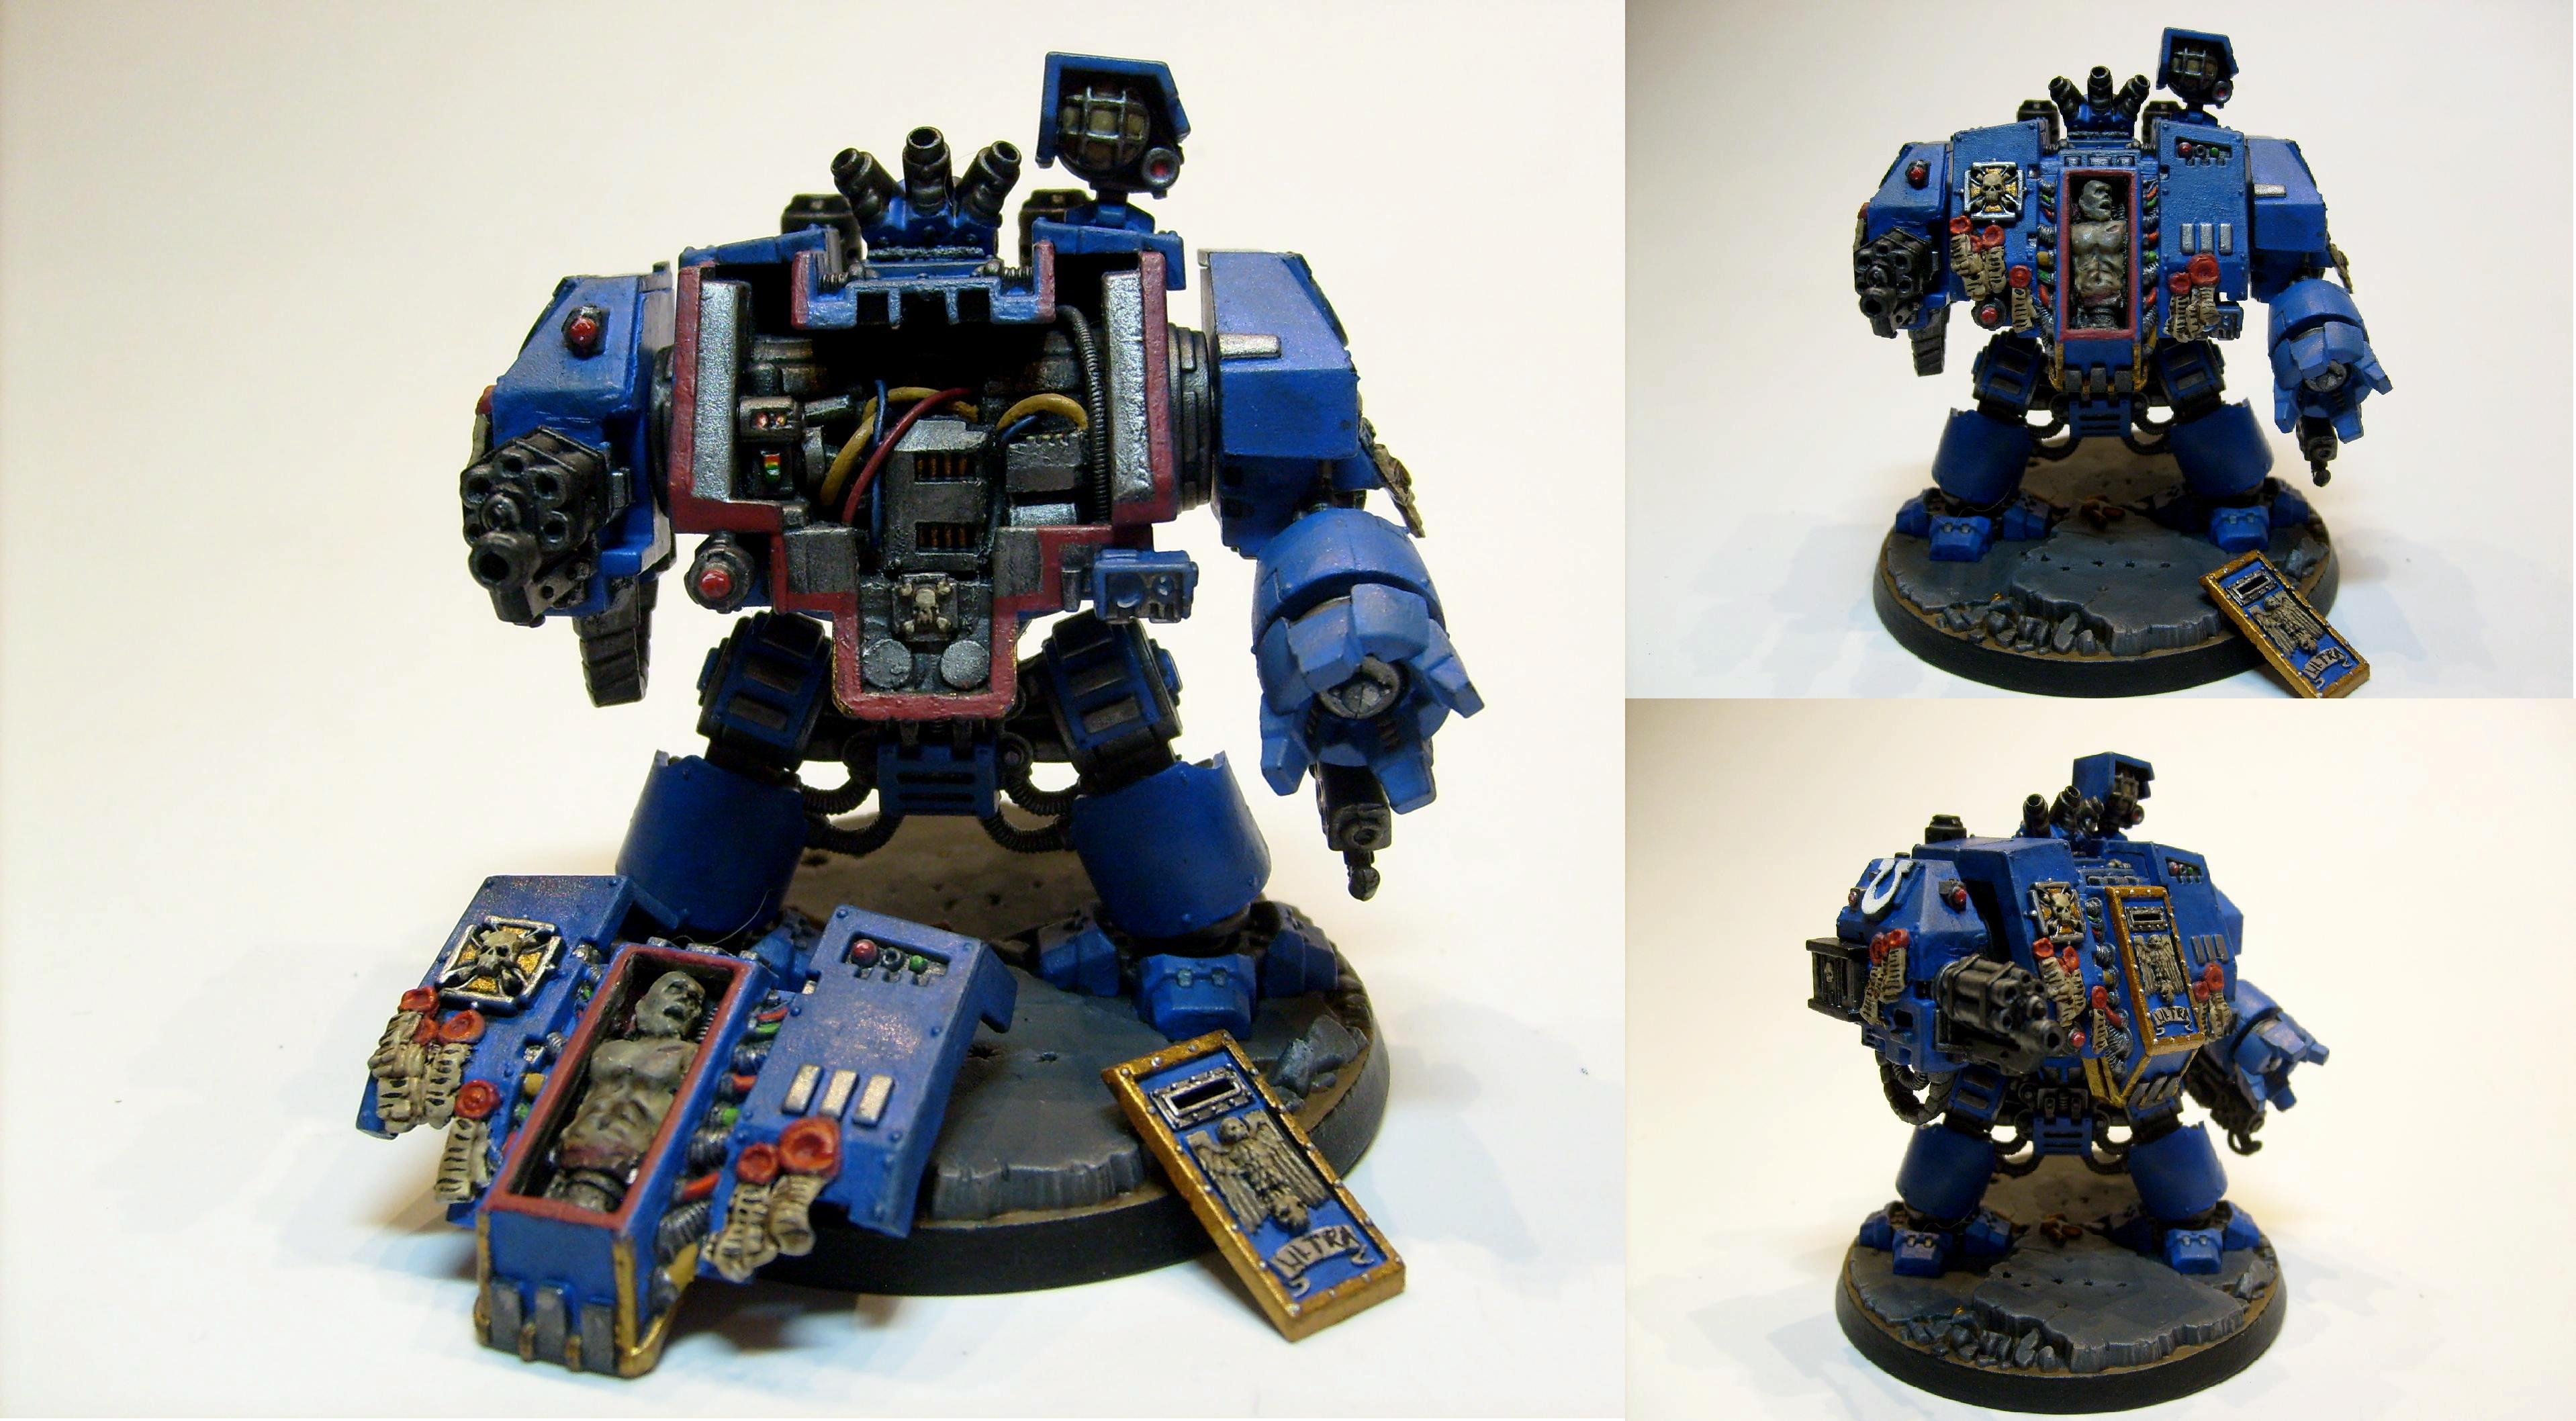 Dreadnought, Interior, Space Marines, Ultramarines